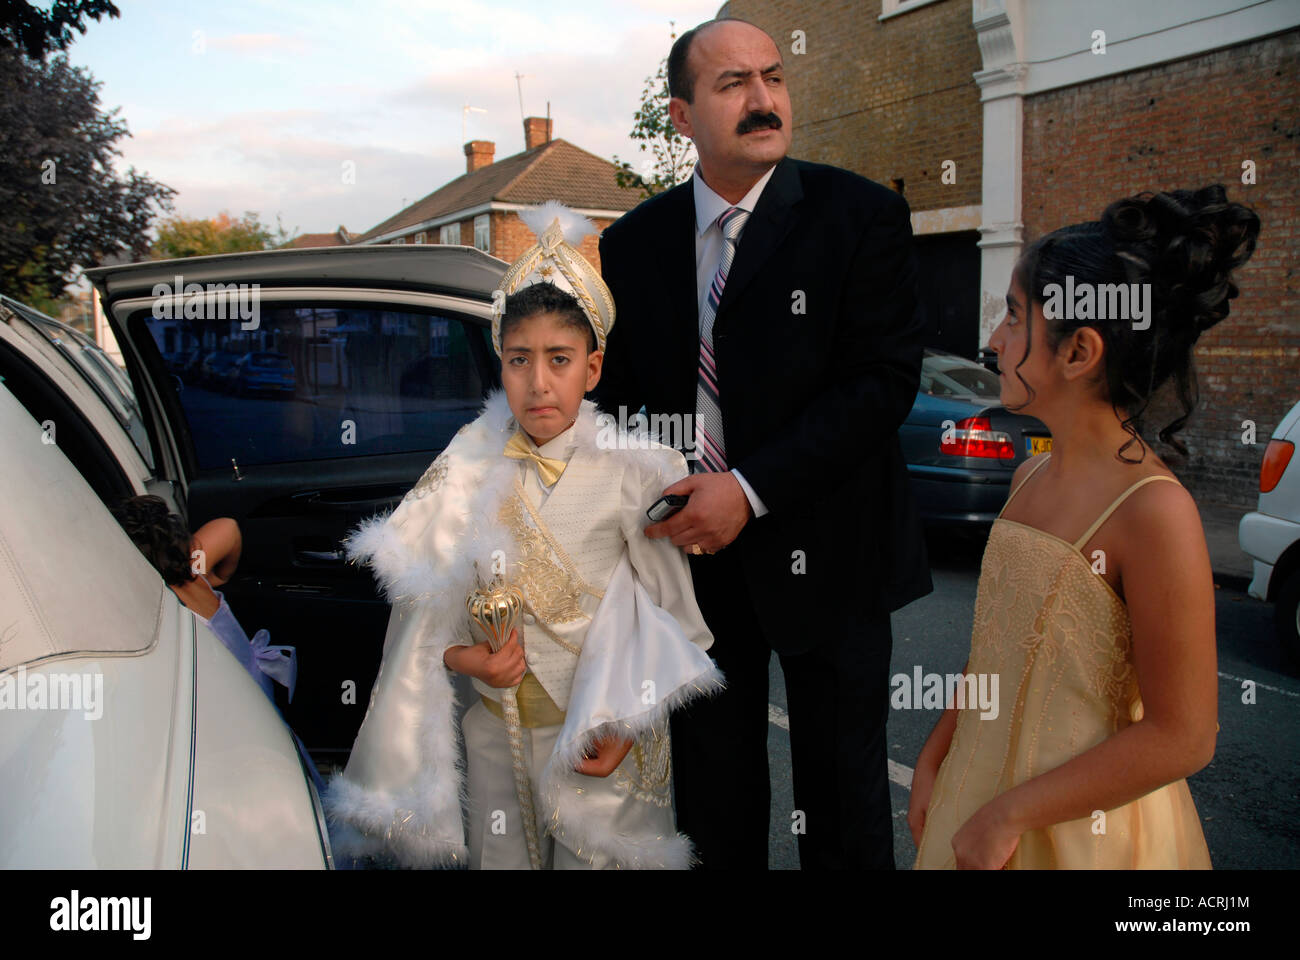 TURKISH BOY BEFORE CIRCUMCISION WITH HIS FAMILY - Stock Image